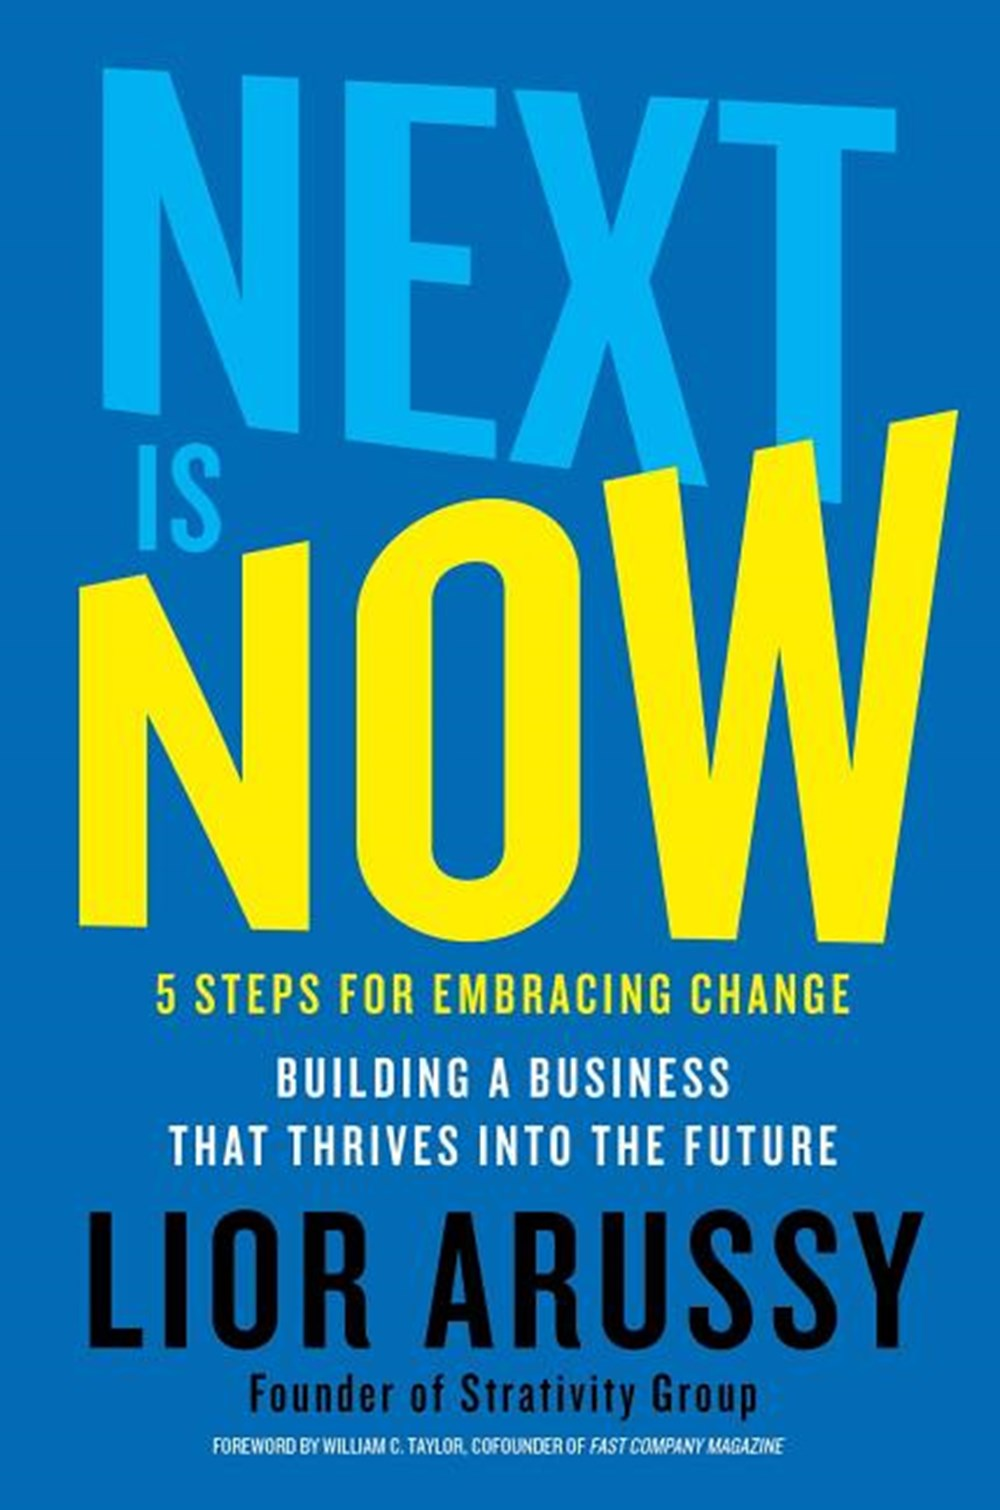 Next Is Now 5 Steps for Embracing Change--Building a Business That Thrives Into the Future